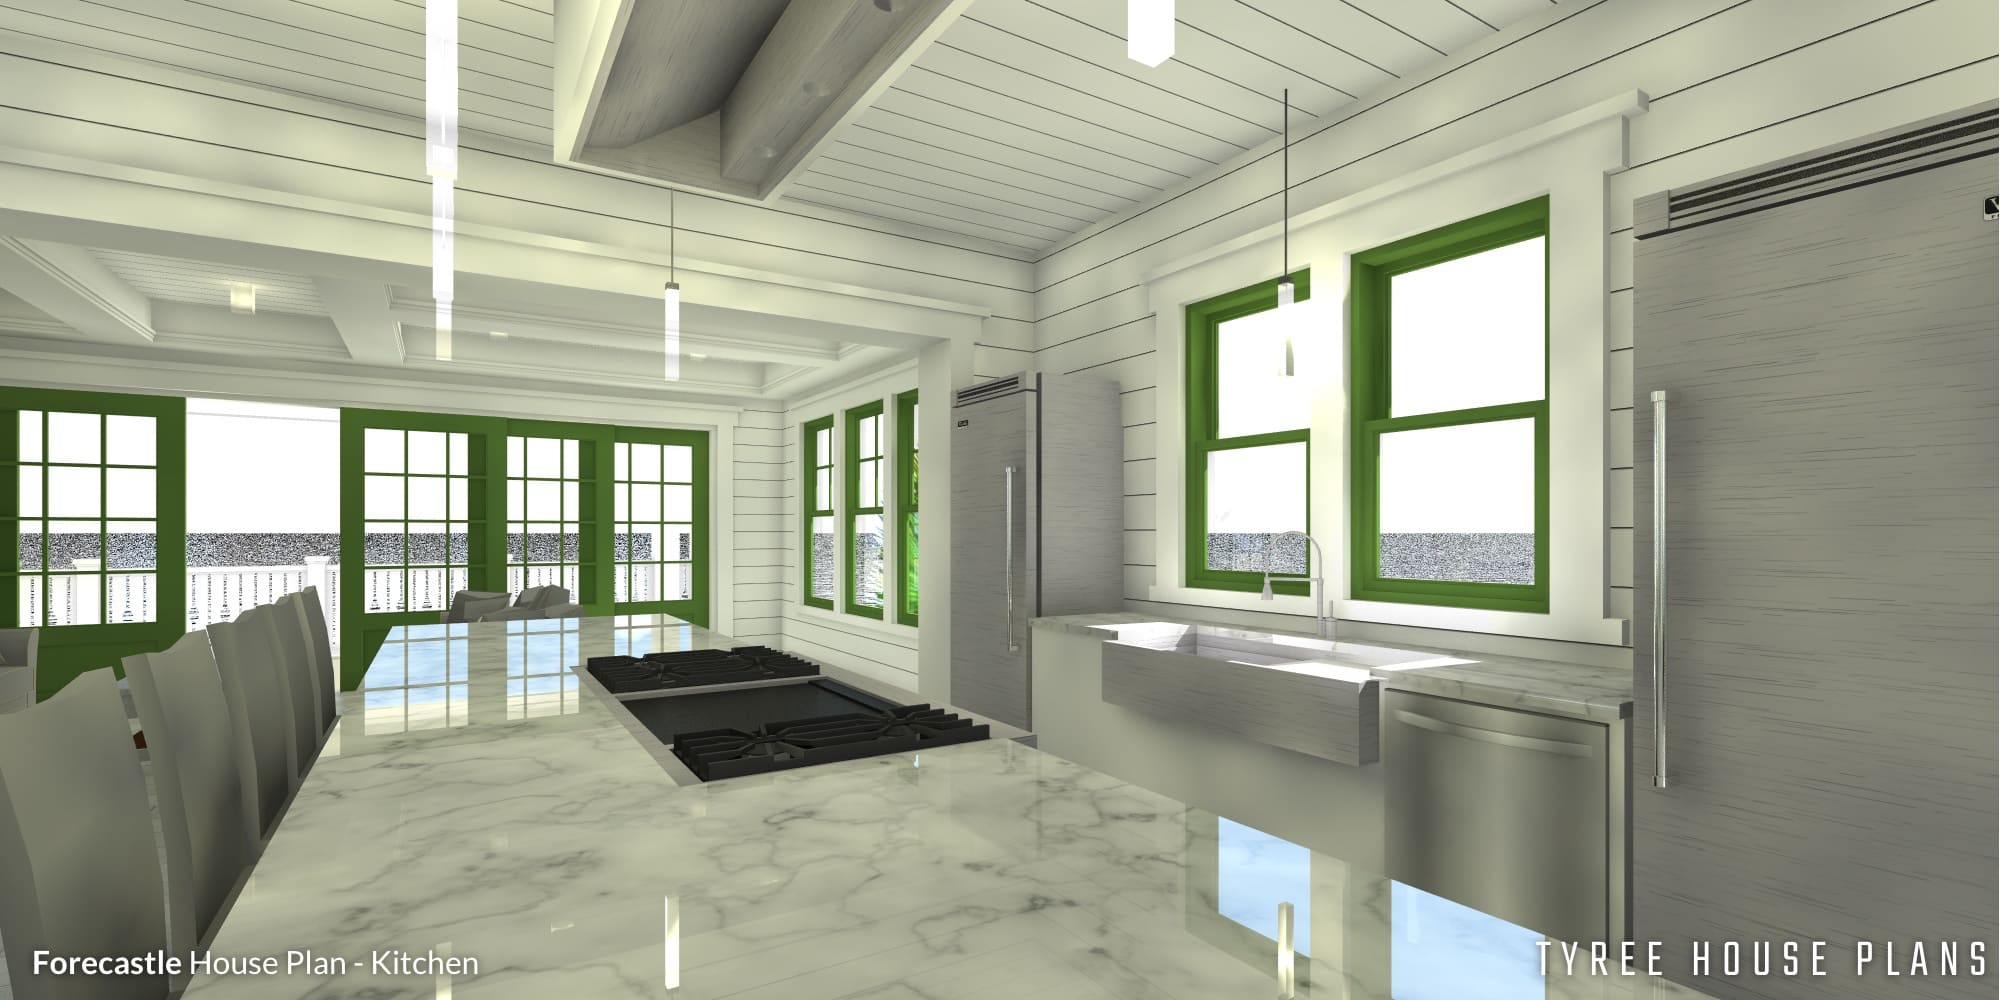 Kitchen - Forecastle House Plan by Tyree House Plans